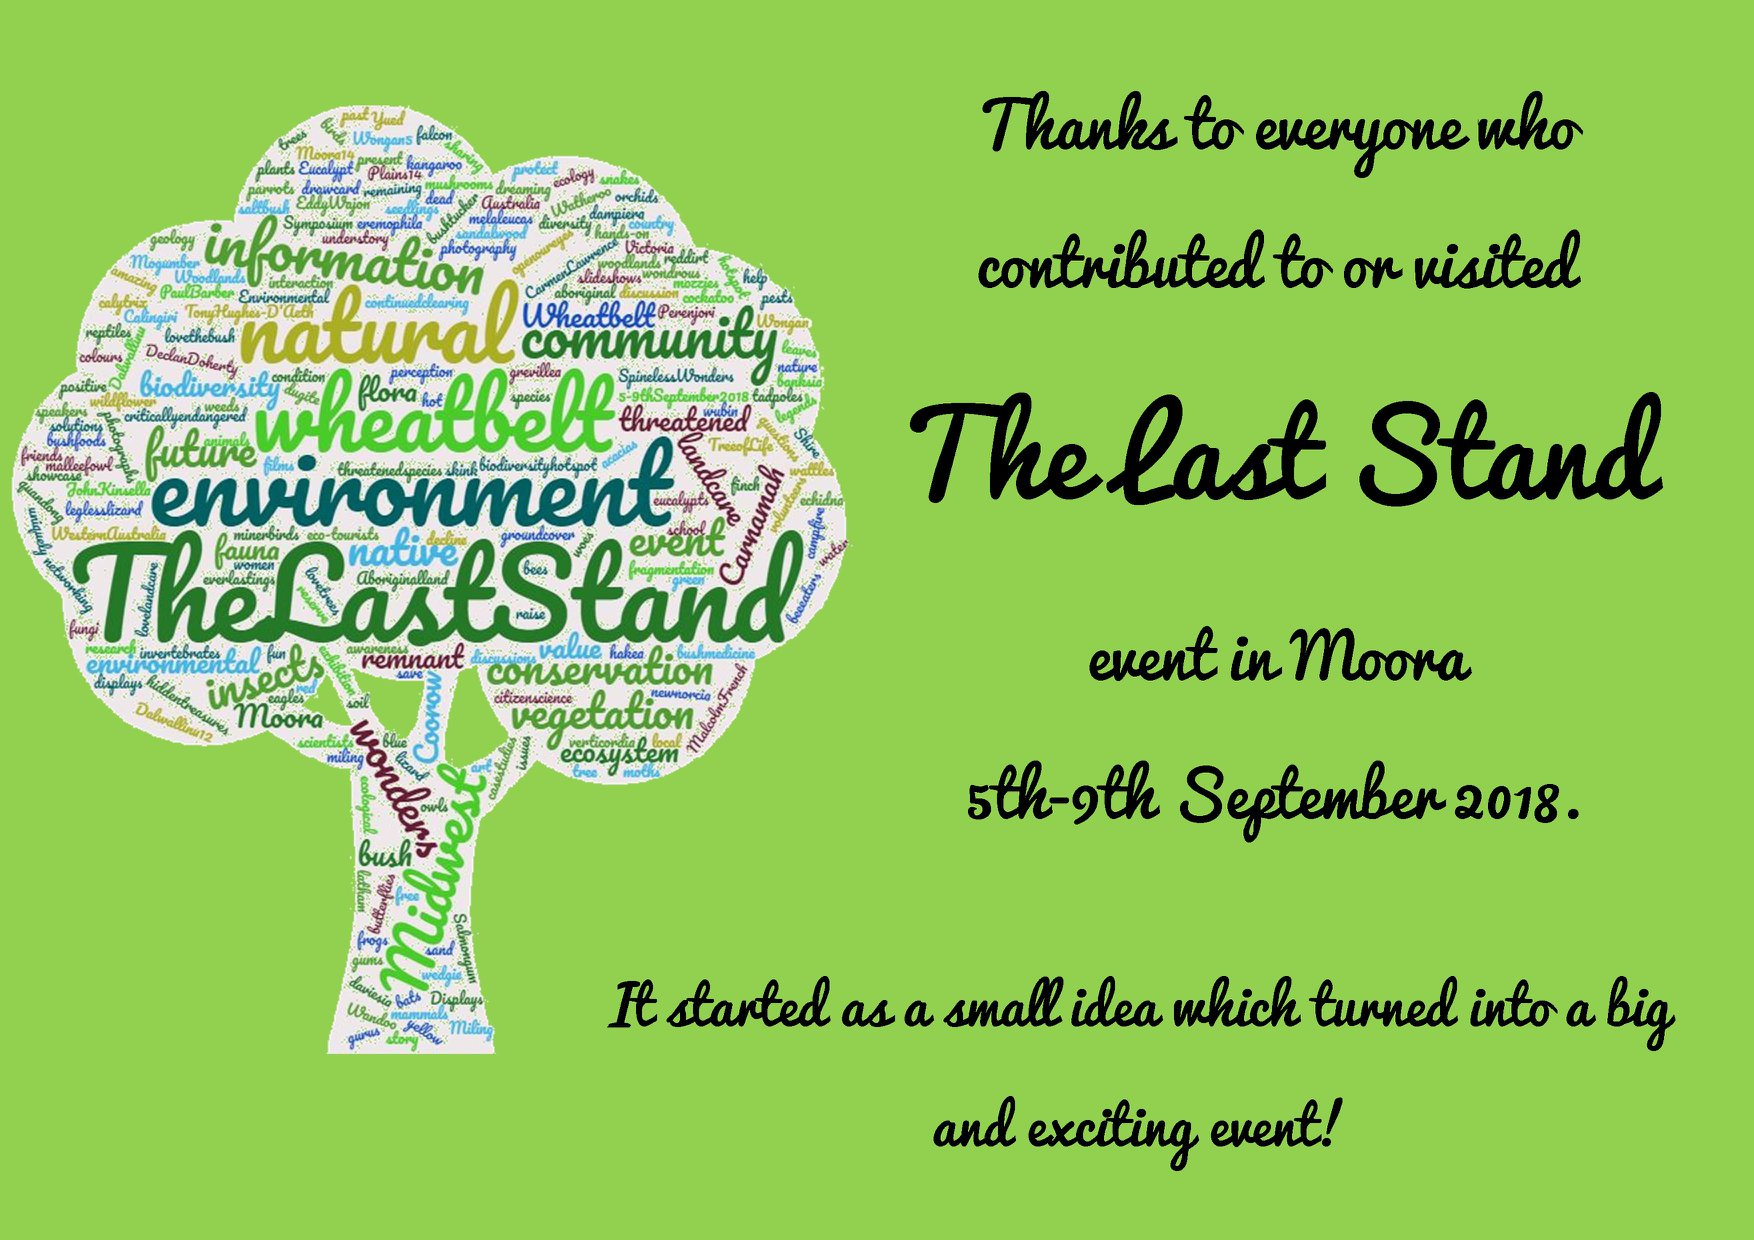 The Last Stand makes a stand for the environment